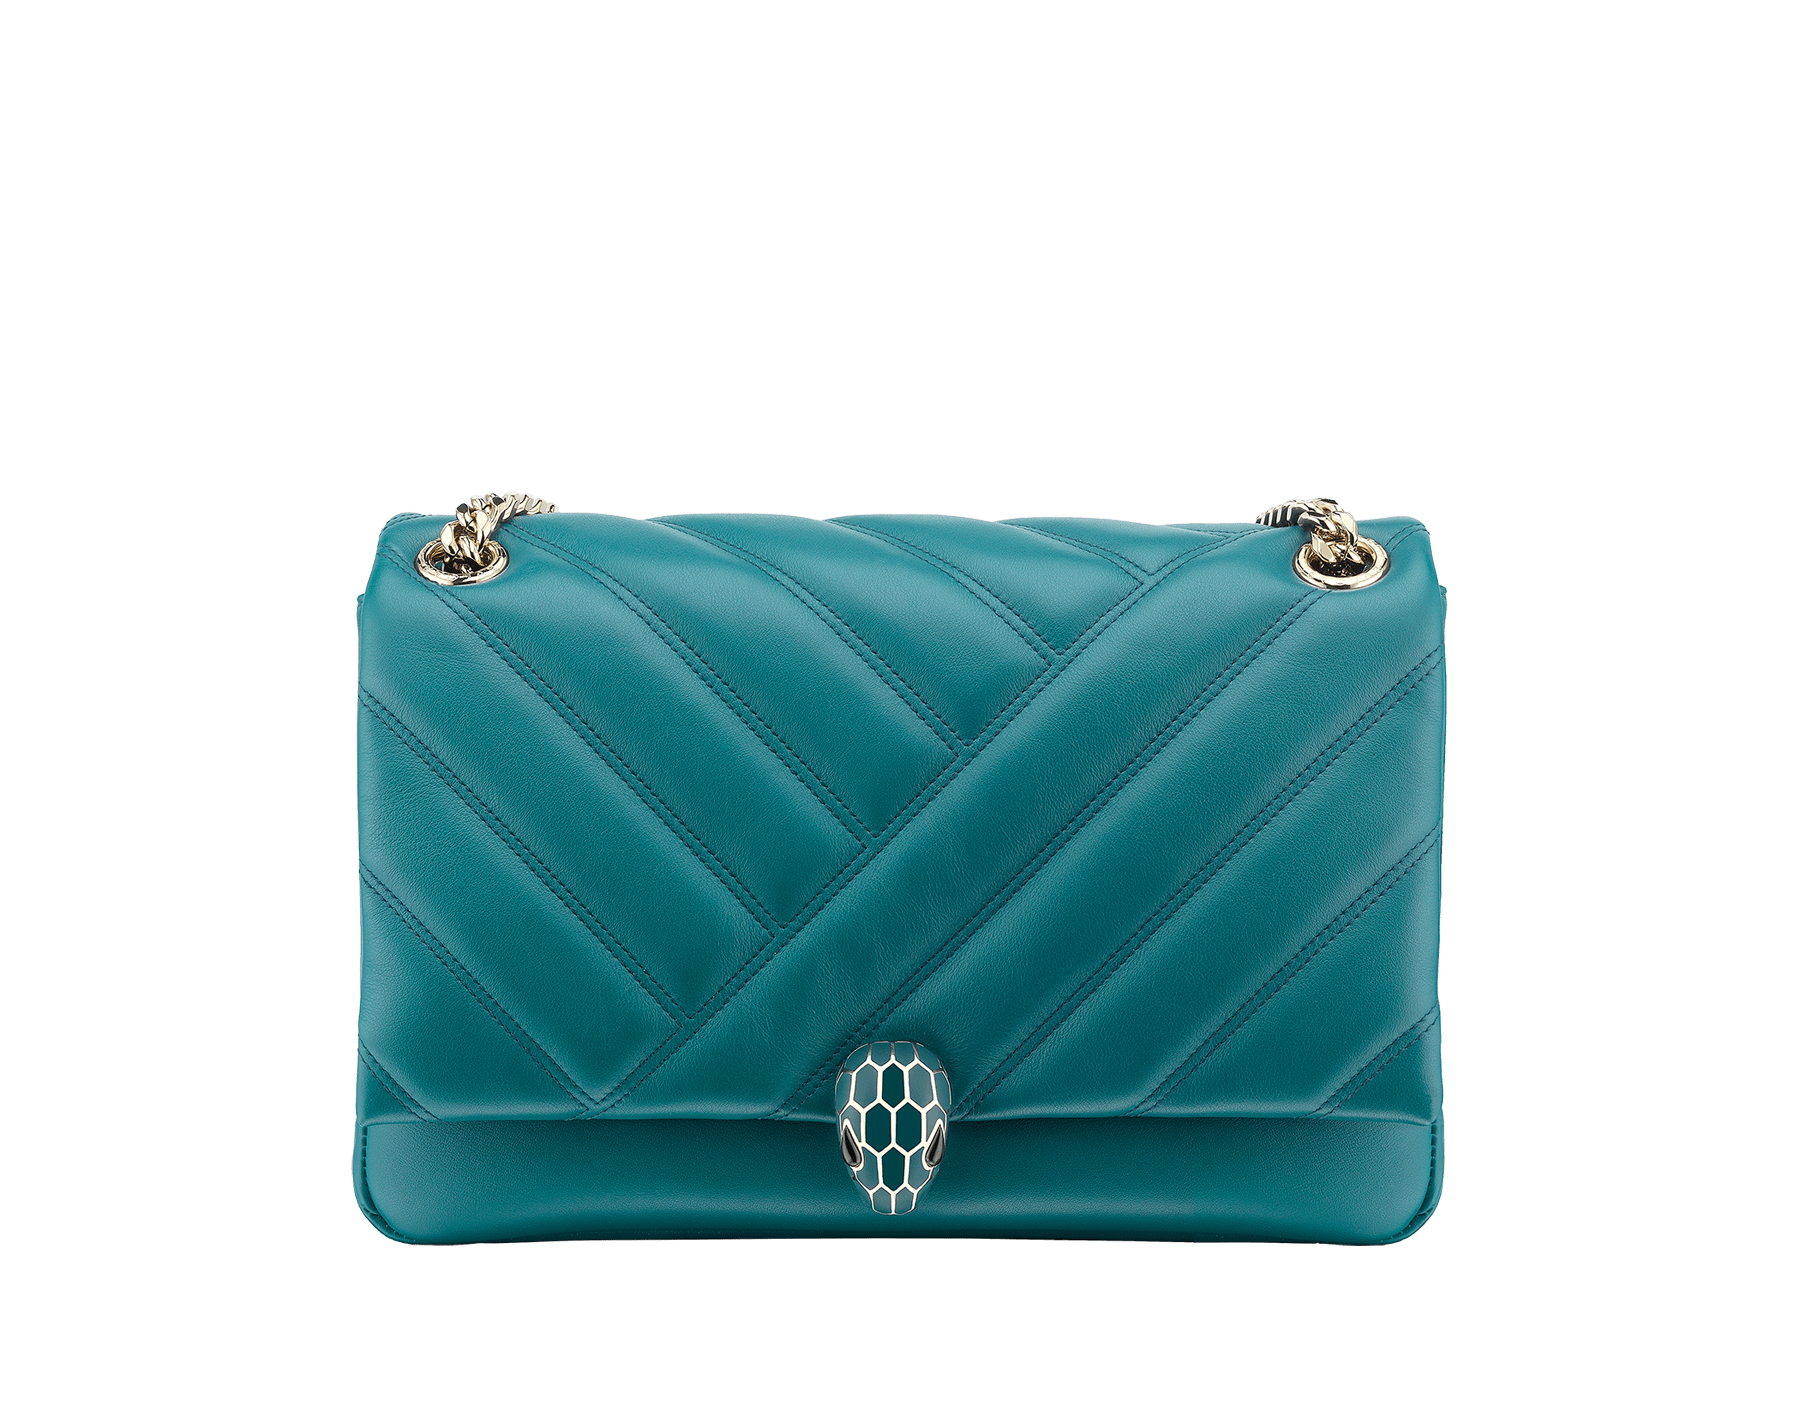 Serpenti Cabochon shoulder bag in soft matelassè deep jade nappa leather, with a graphic motif, and deep jade calf leather. Brass light gold plated tempting snake head closure in matte deep jade and shiny deep jade enamel, with black onyx eyes. 287984 image 4